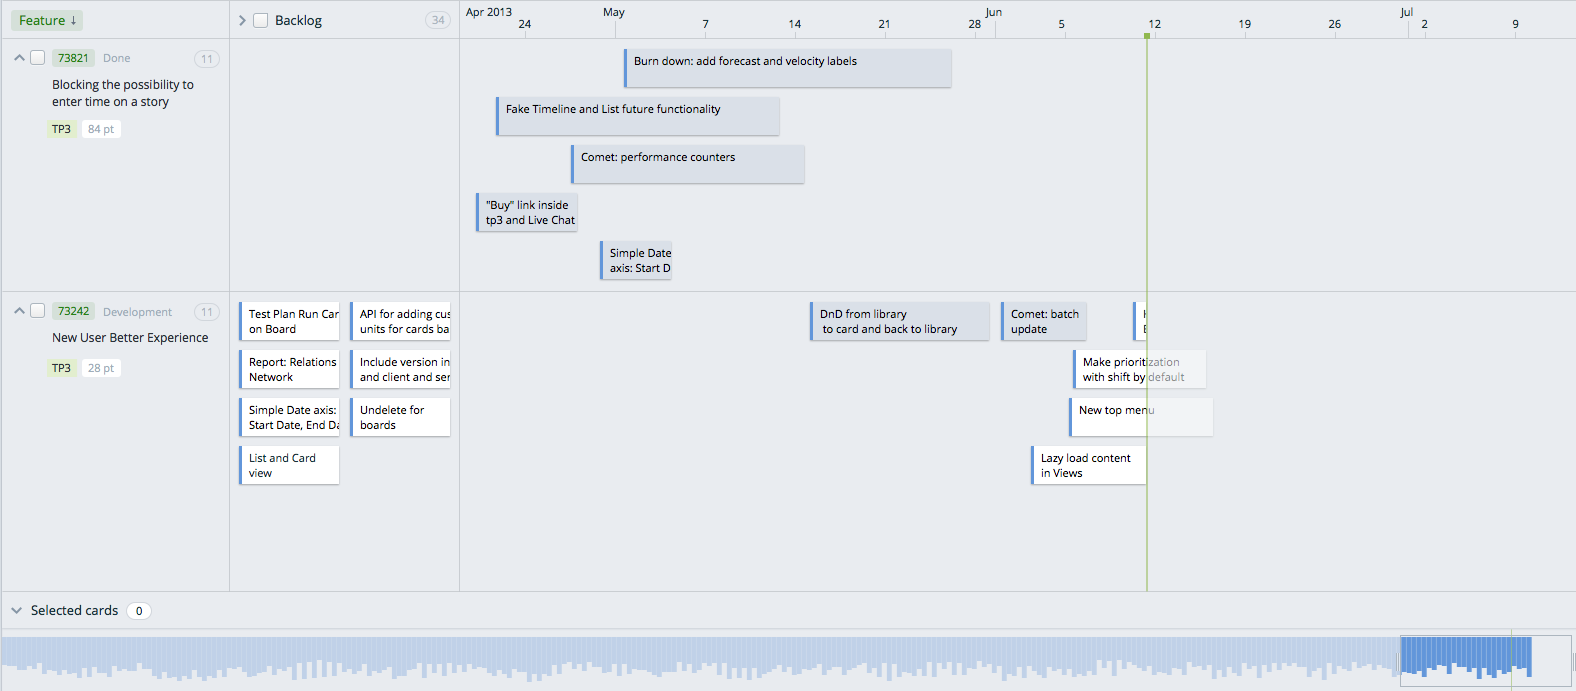 Features visualized on a timeline in Targetprocess 3